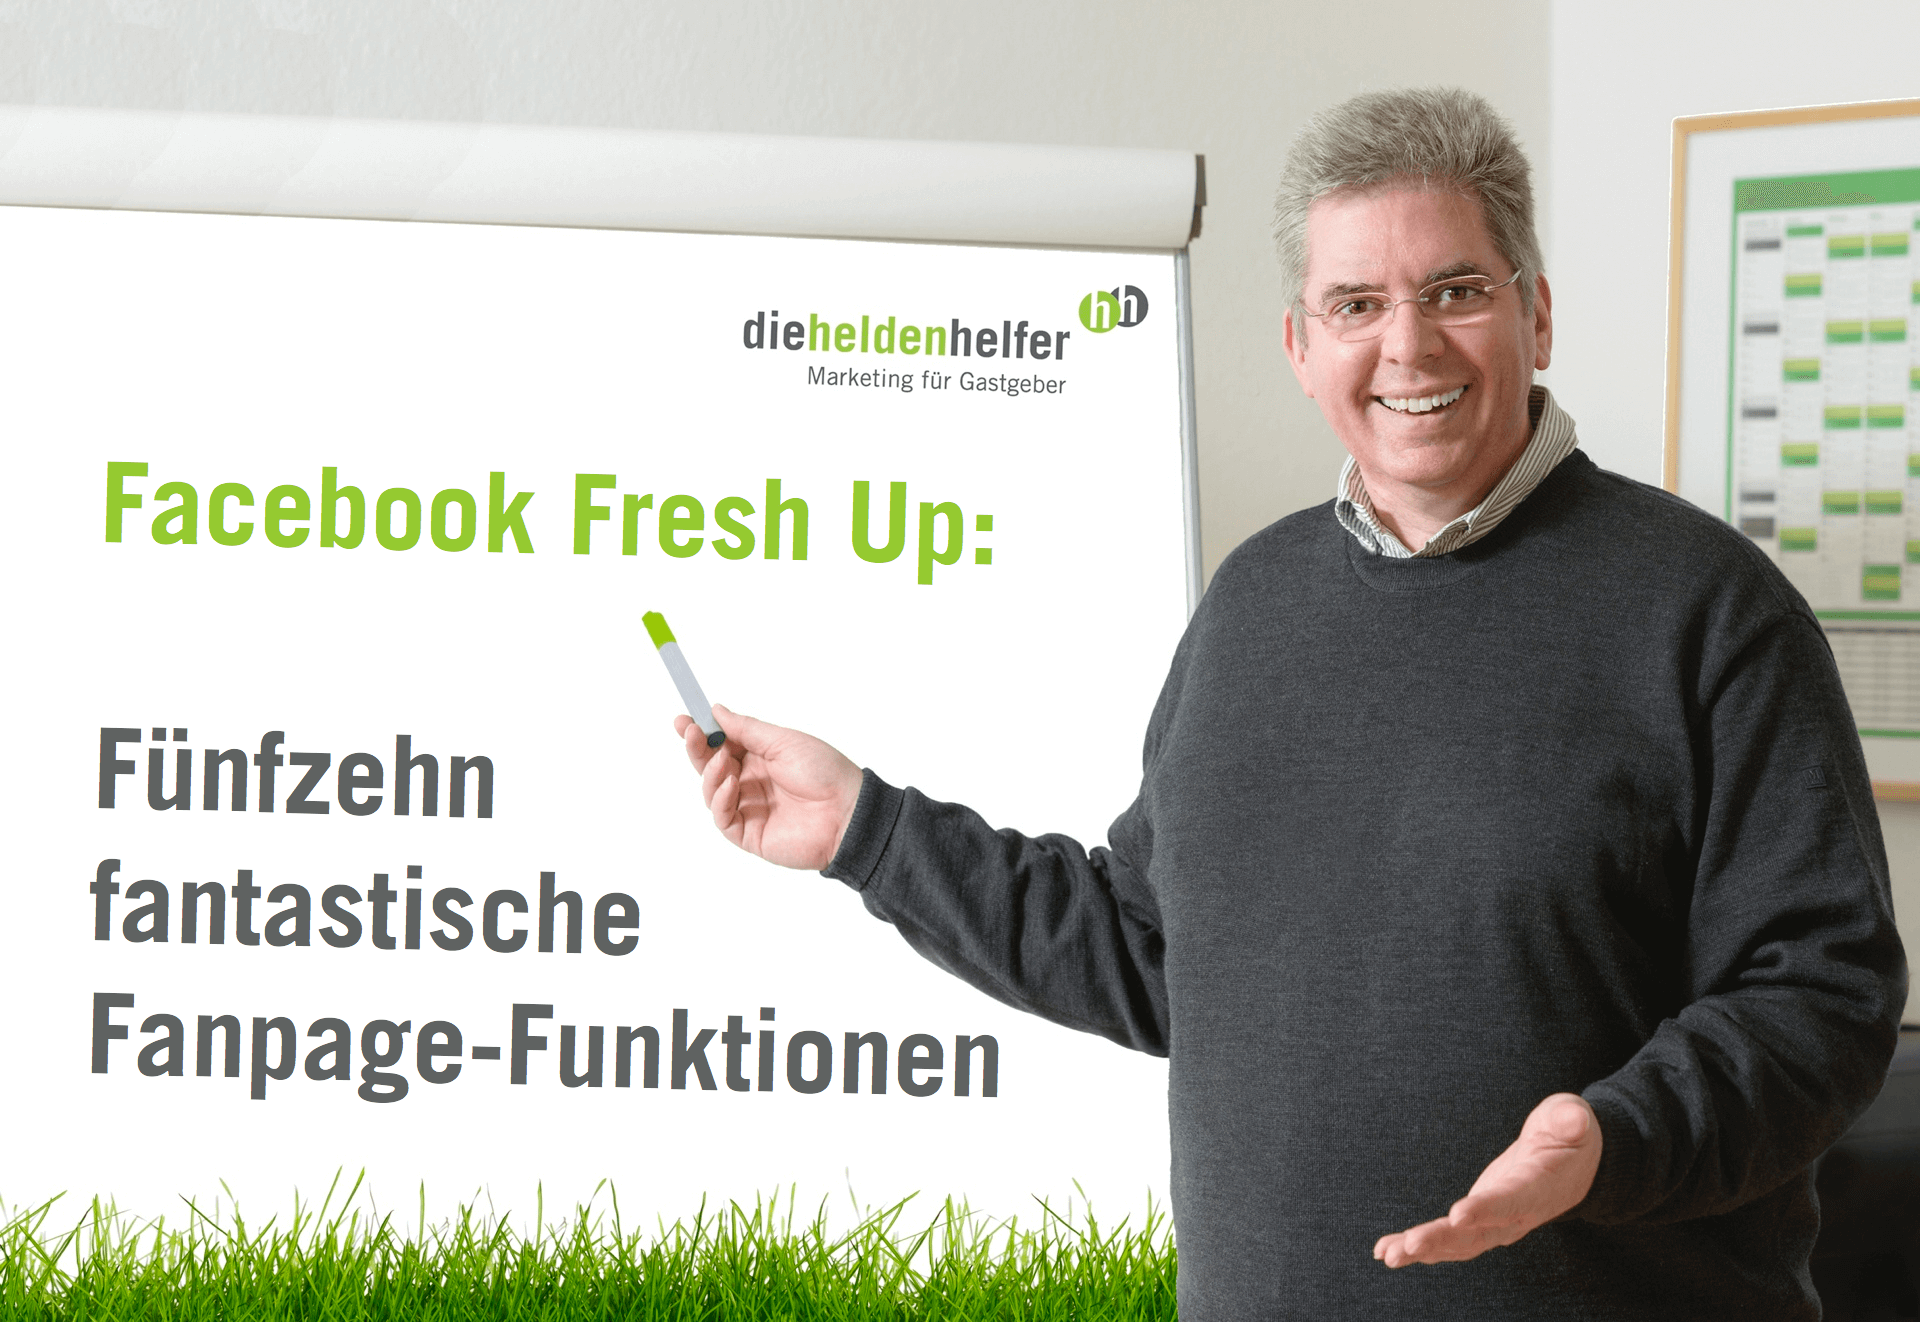 Andreas pfeifer facebook fresh up k